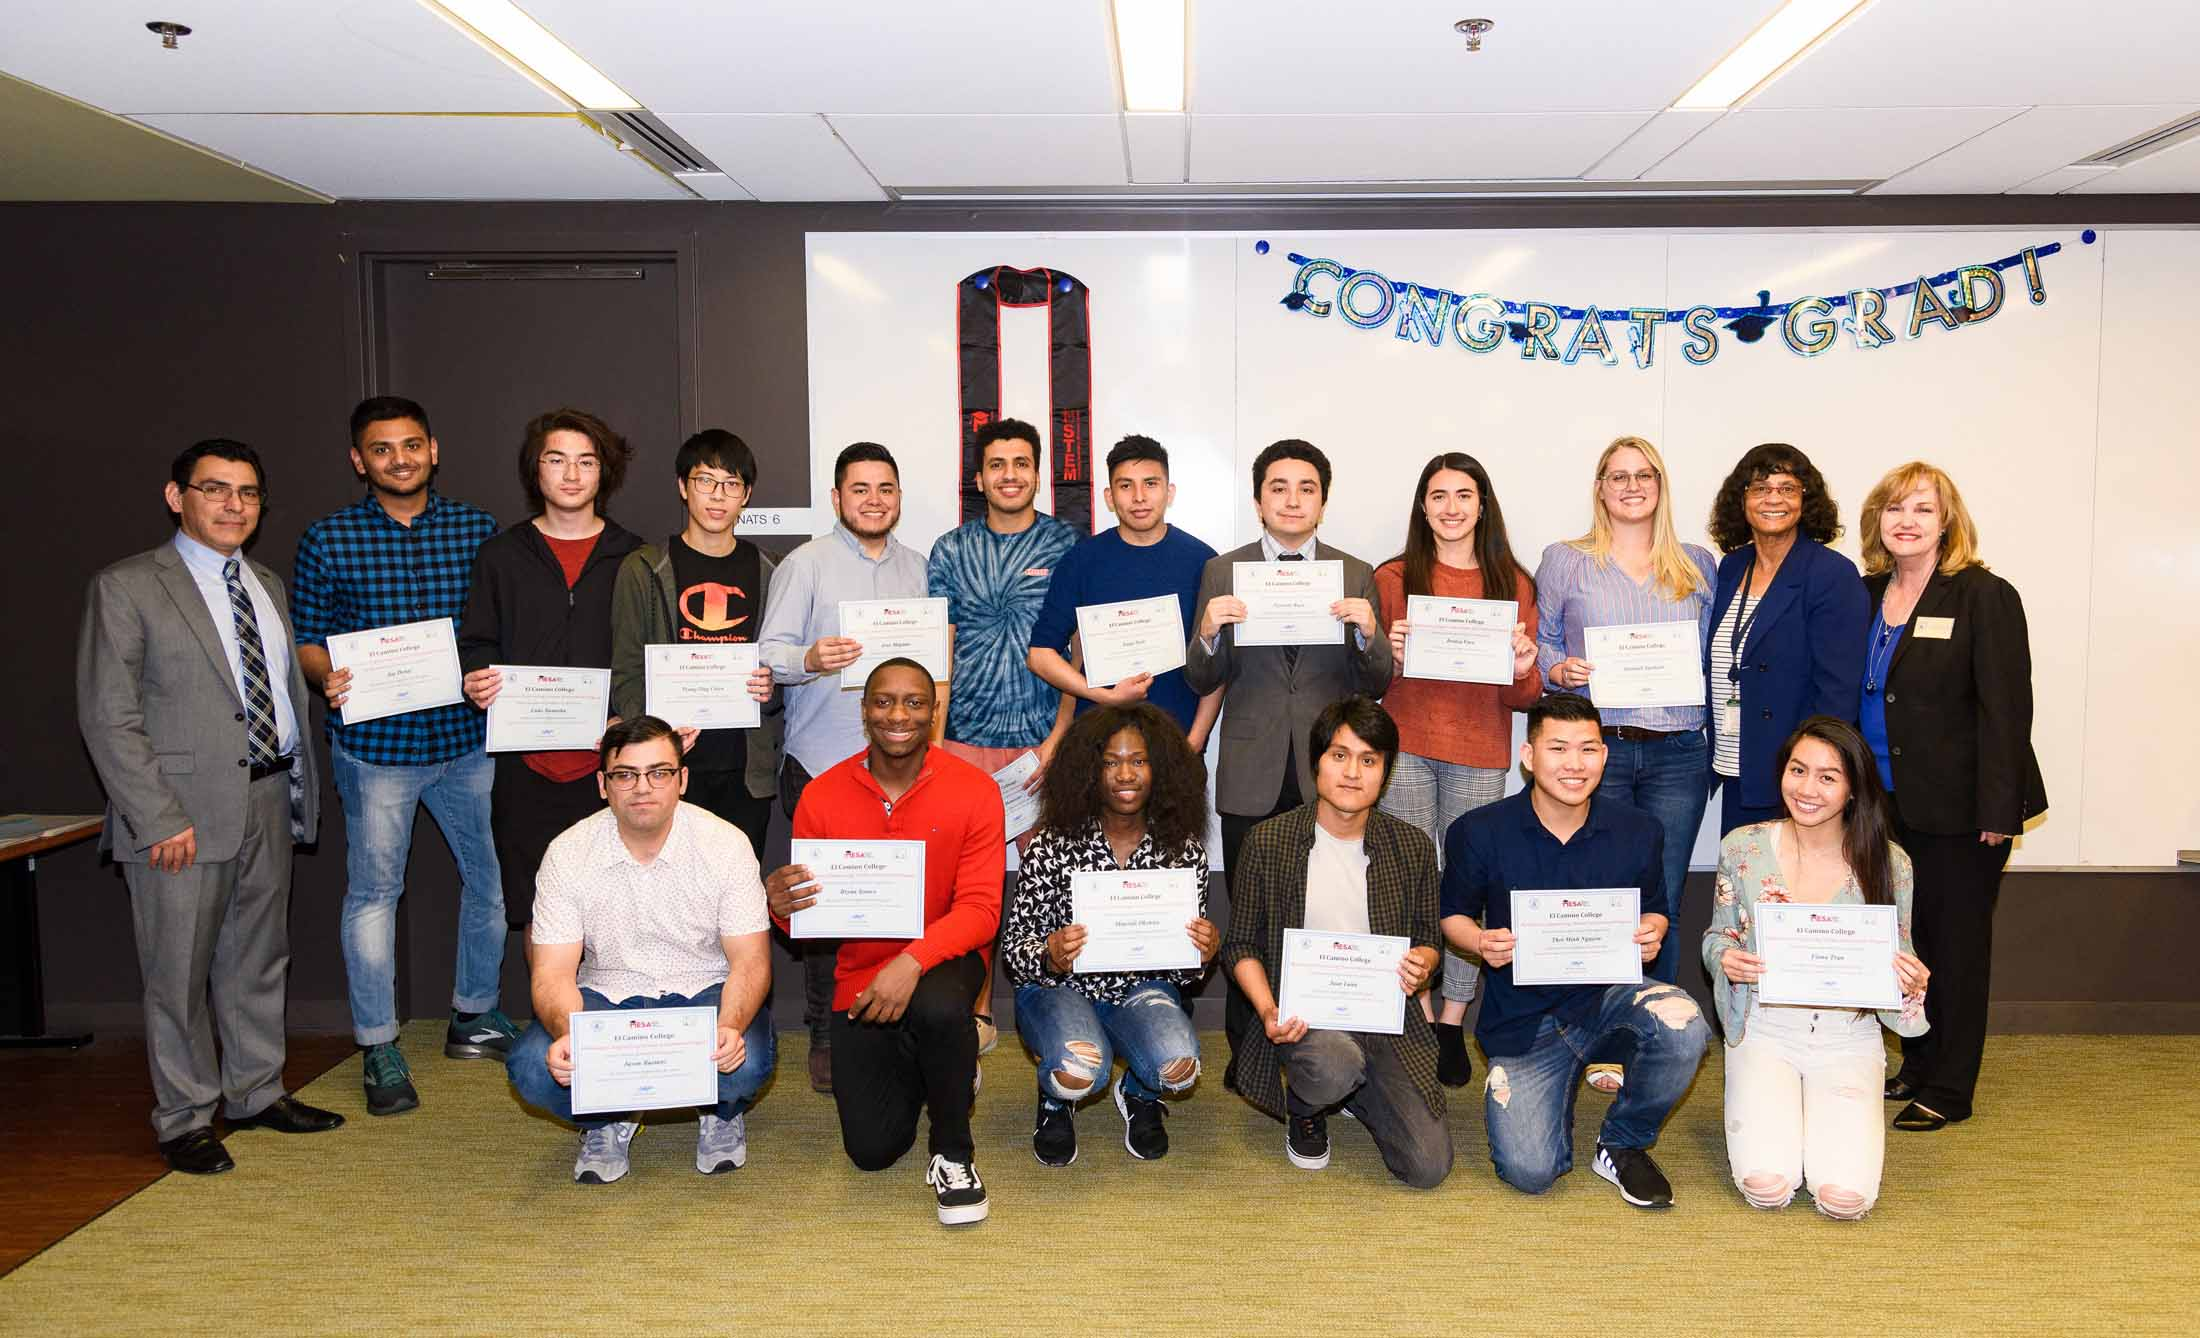 A $25,000 grant from Edison International will make the academic goals of numerous El Camino College students possible this year